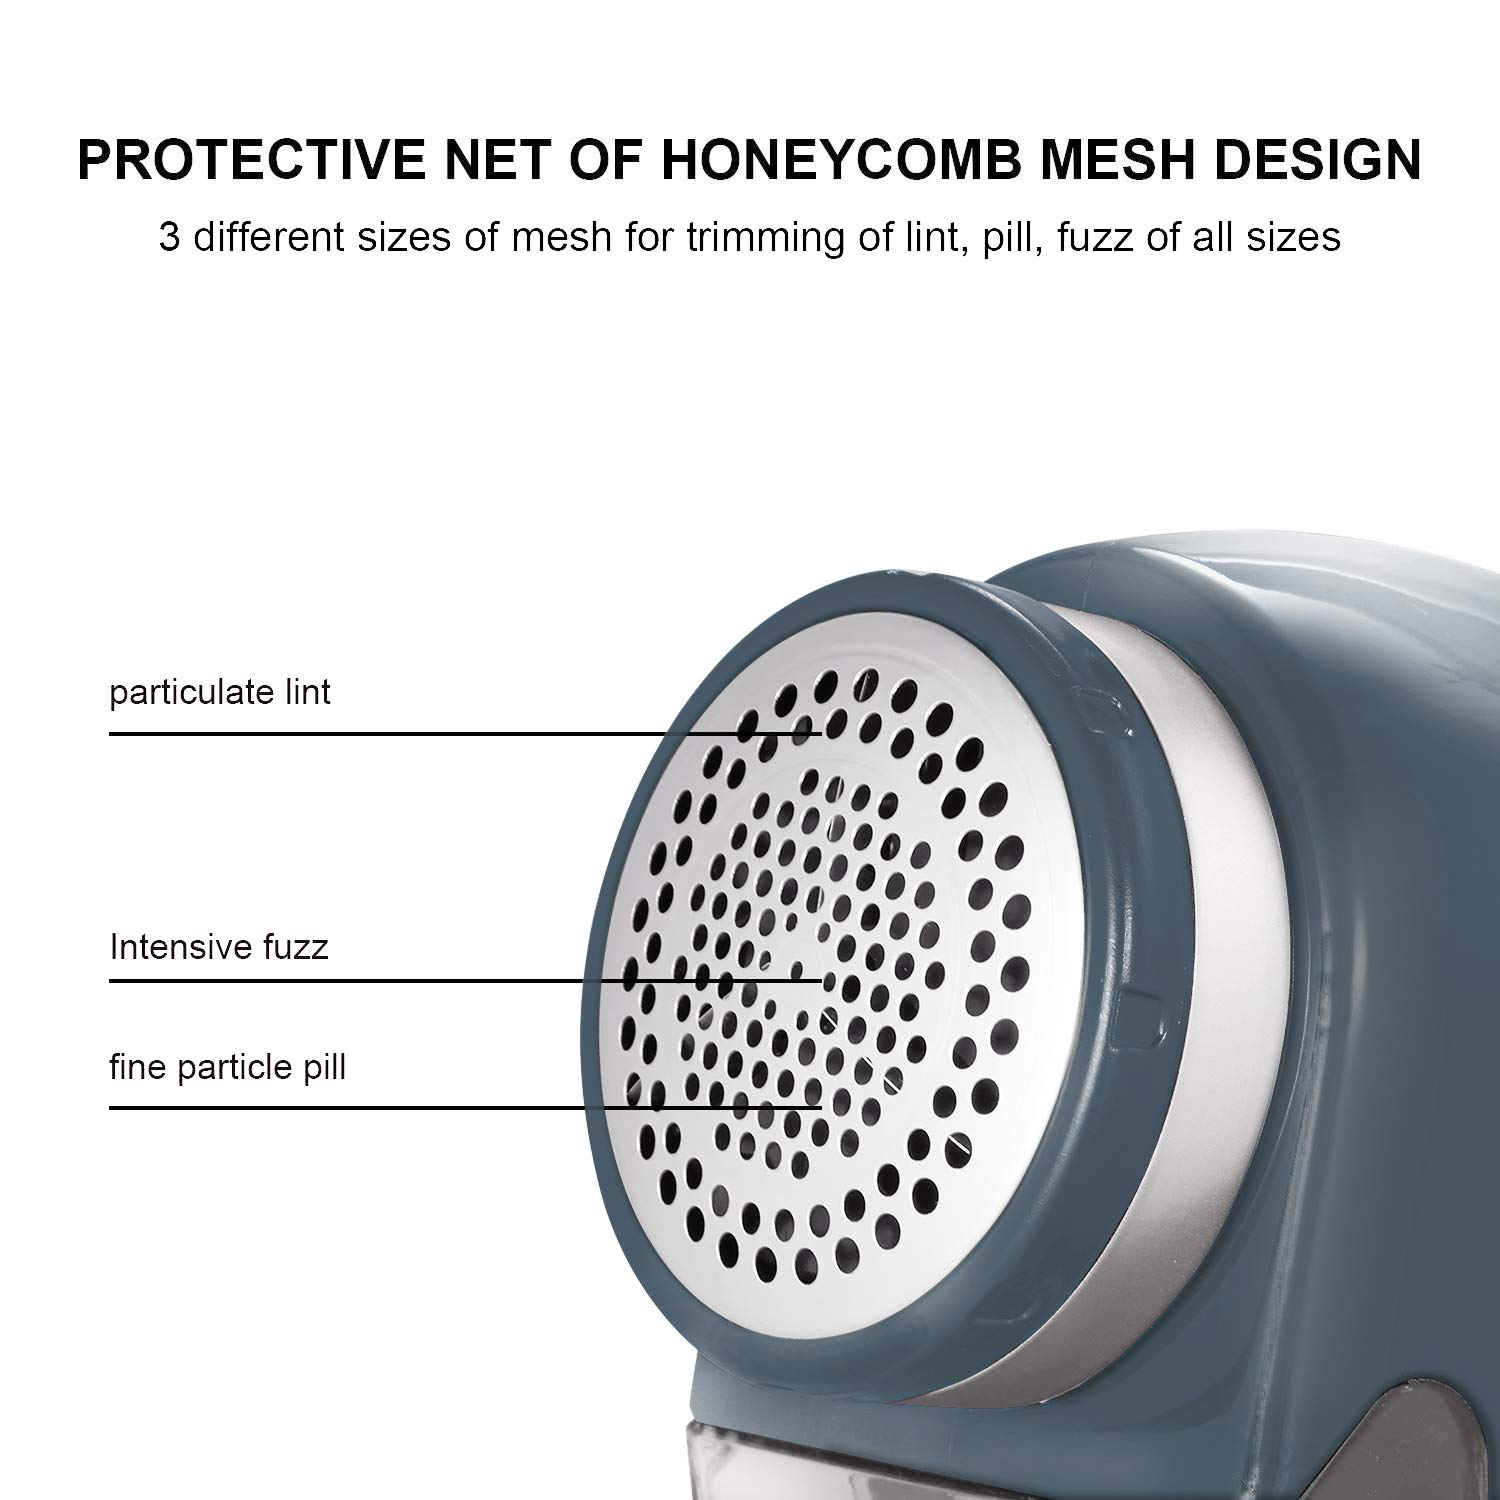 SUPER LINT Professional Electric Sweater Shaver Best Fuzz Pill Bobble Remover for Fabrics, Bedding, Clothes and Furniture, Use with Batteries or Power Adapter, Marine Blue & Silver by SUPER LINT (Image #5)